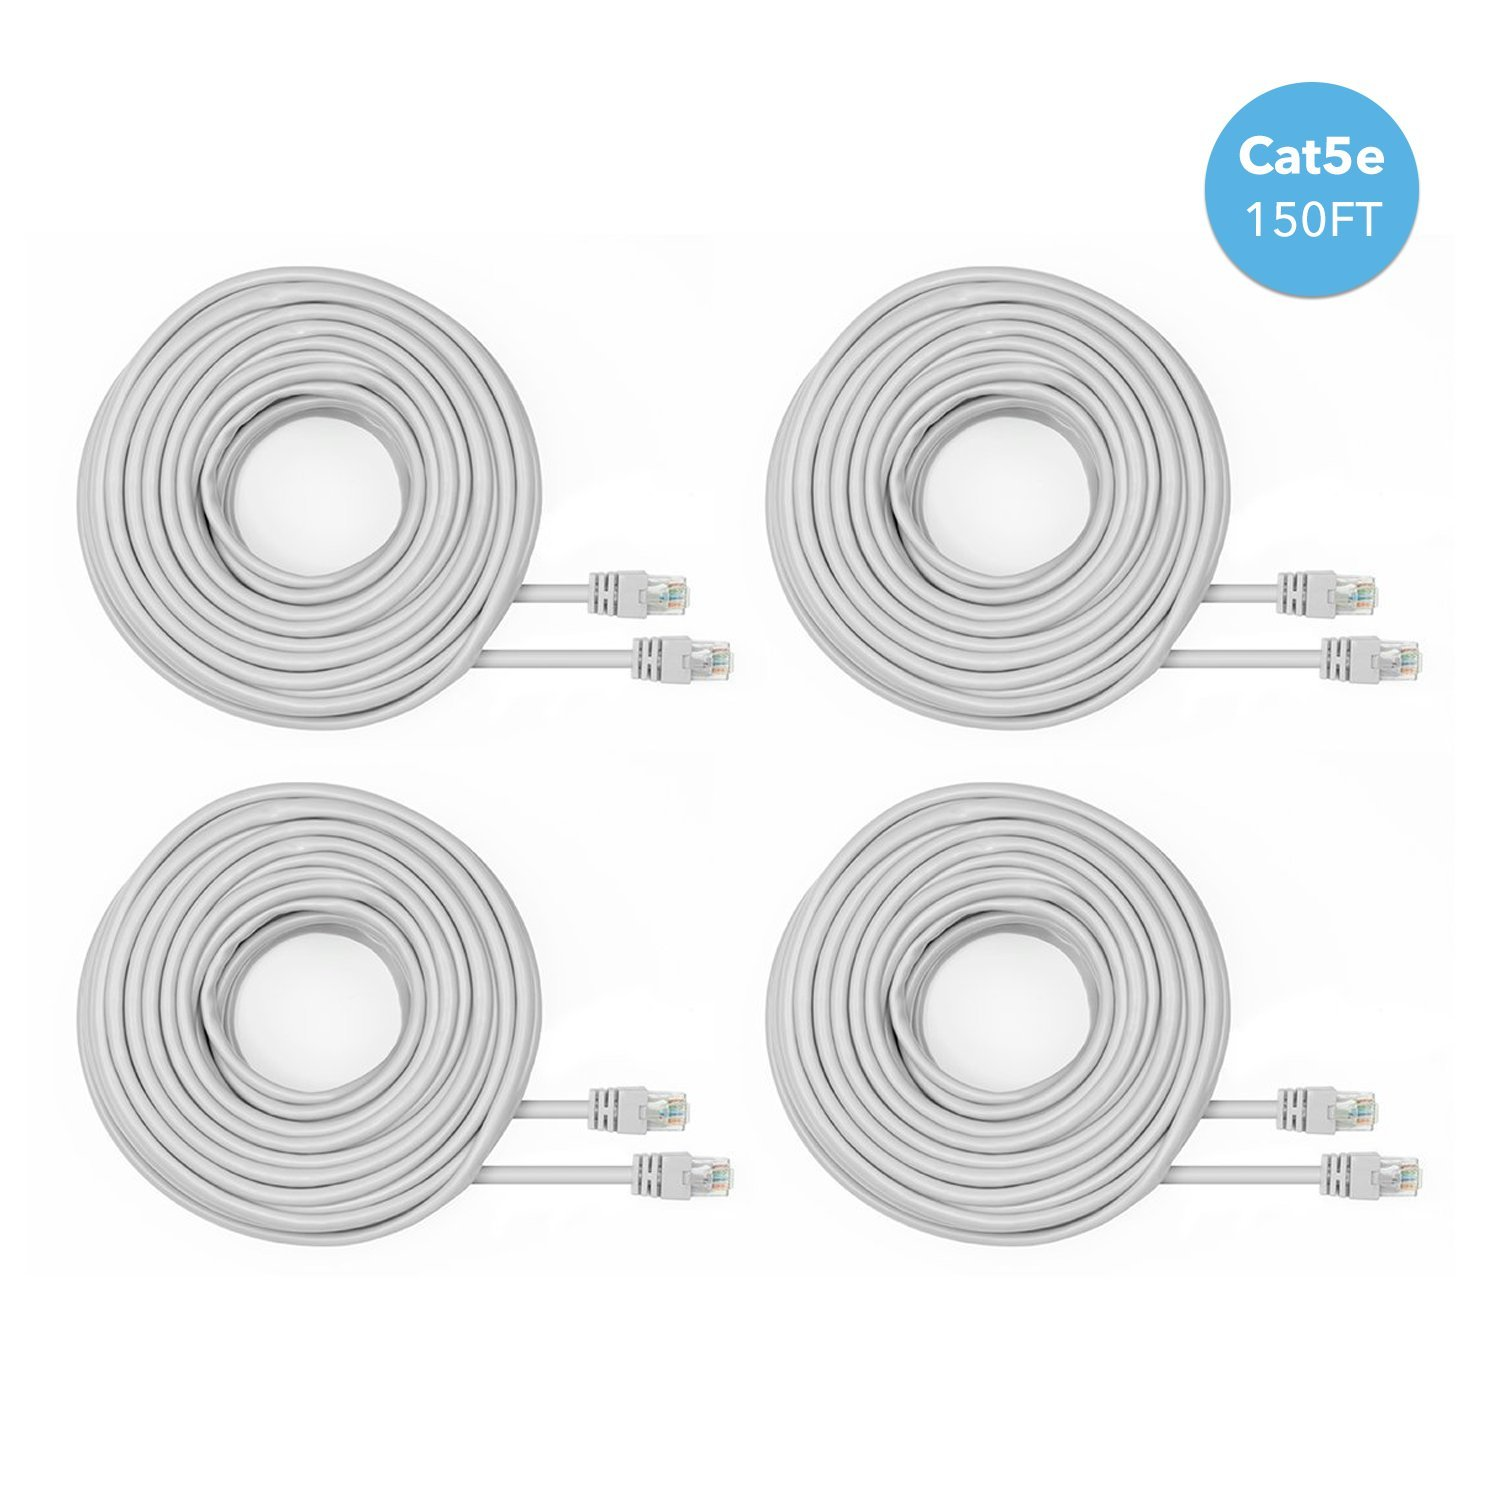 Amcrest Cat5e Cable 150ft Ethernet Cable Internet High Speed Network Cable for POE Security Cameras, Smart TV, PS4, Xbox One, Router, Laptop, Computer, Home, 4-Pack (4PACK-CAT5ECABLE150) by Amcrest